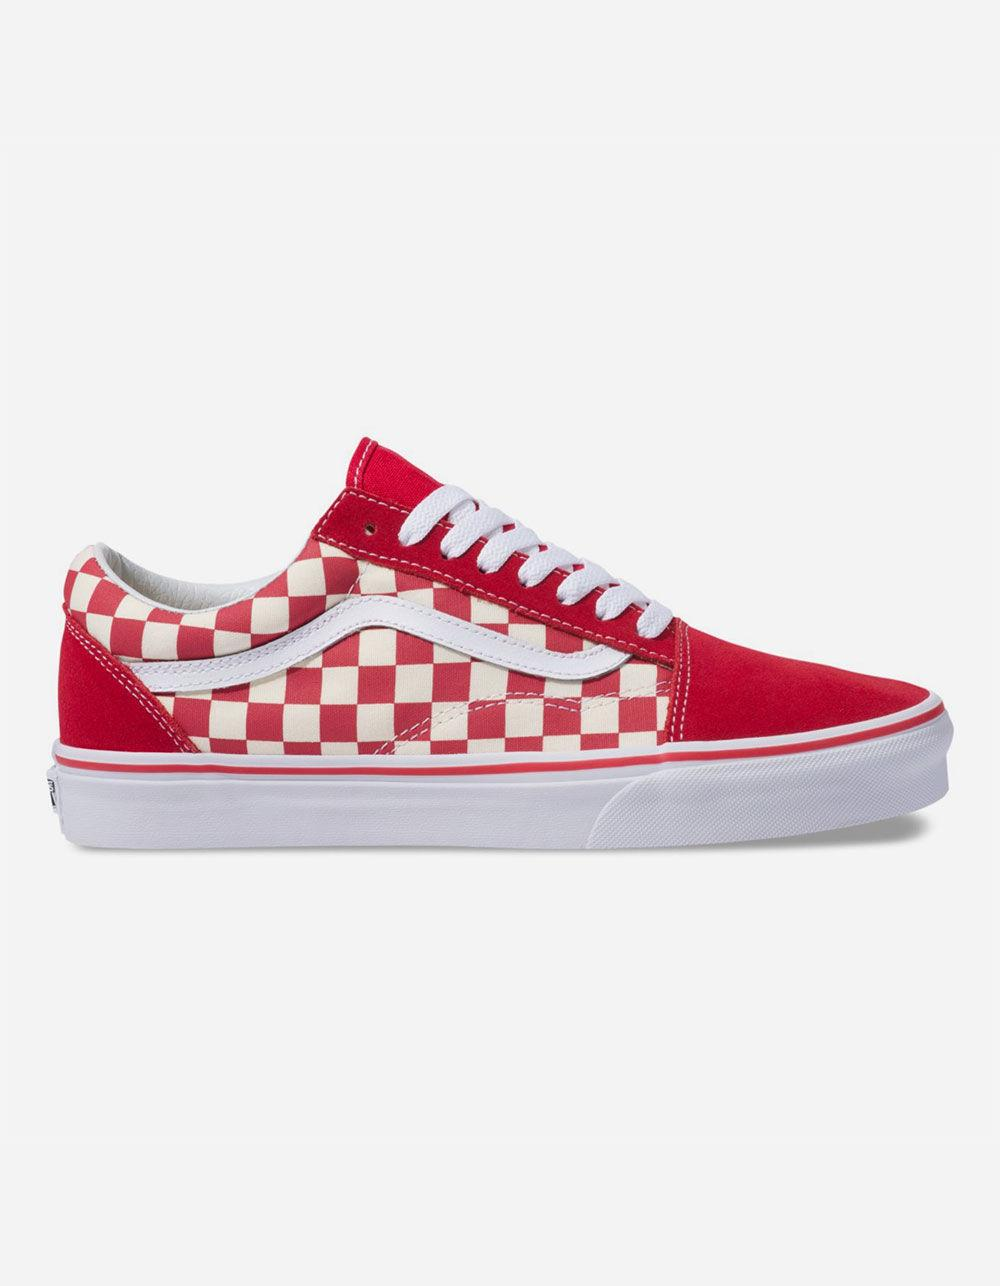 811b5a2a424 Lyst - Vans Primary Check Old Skool Racing Red   White Shoes in Red ...